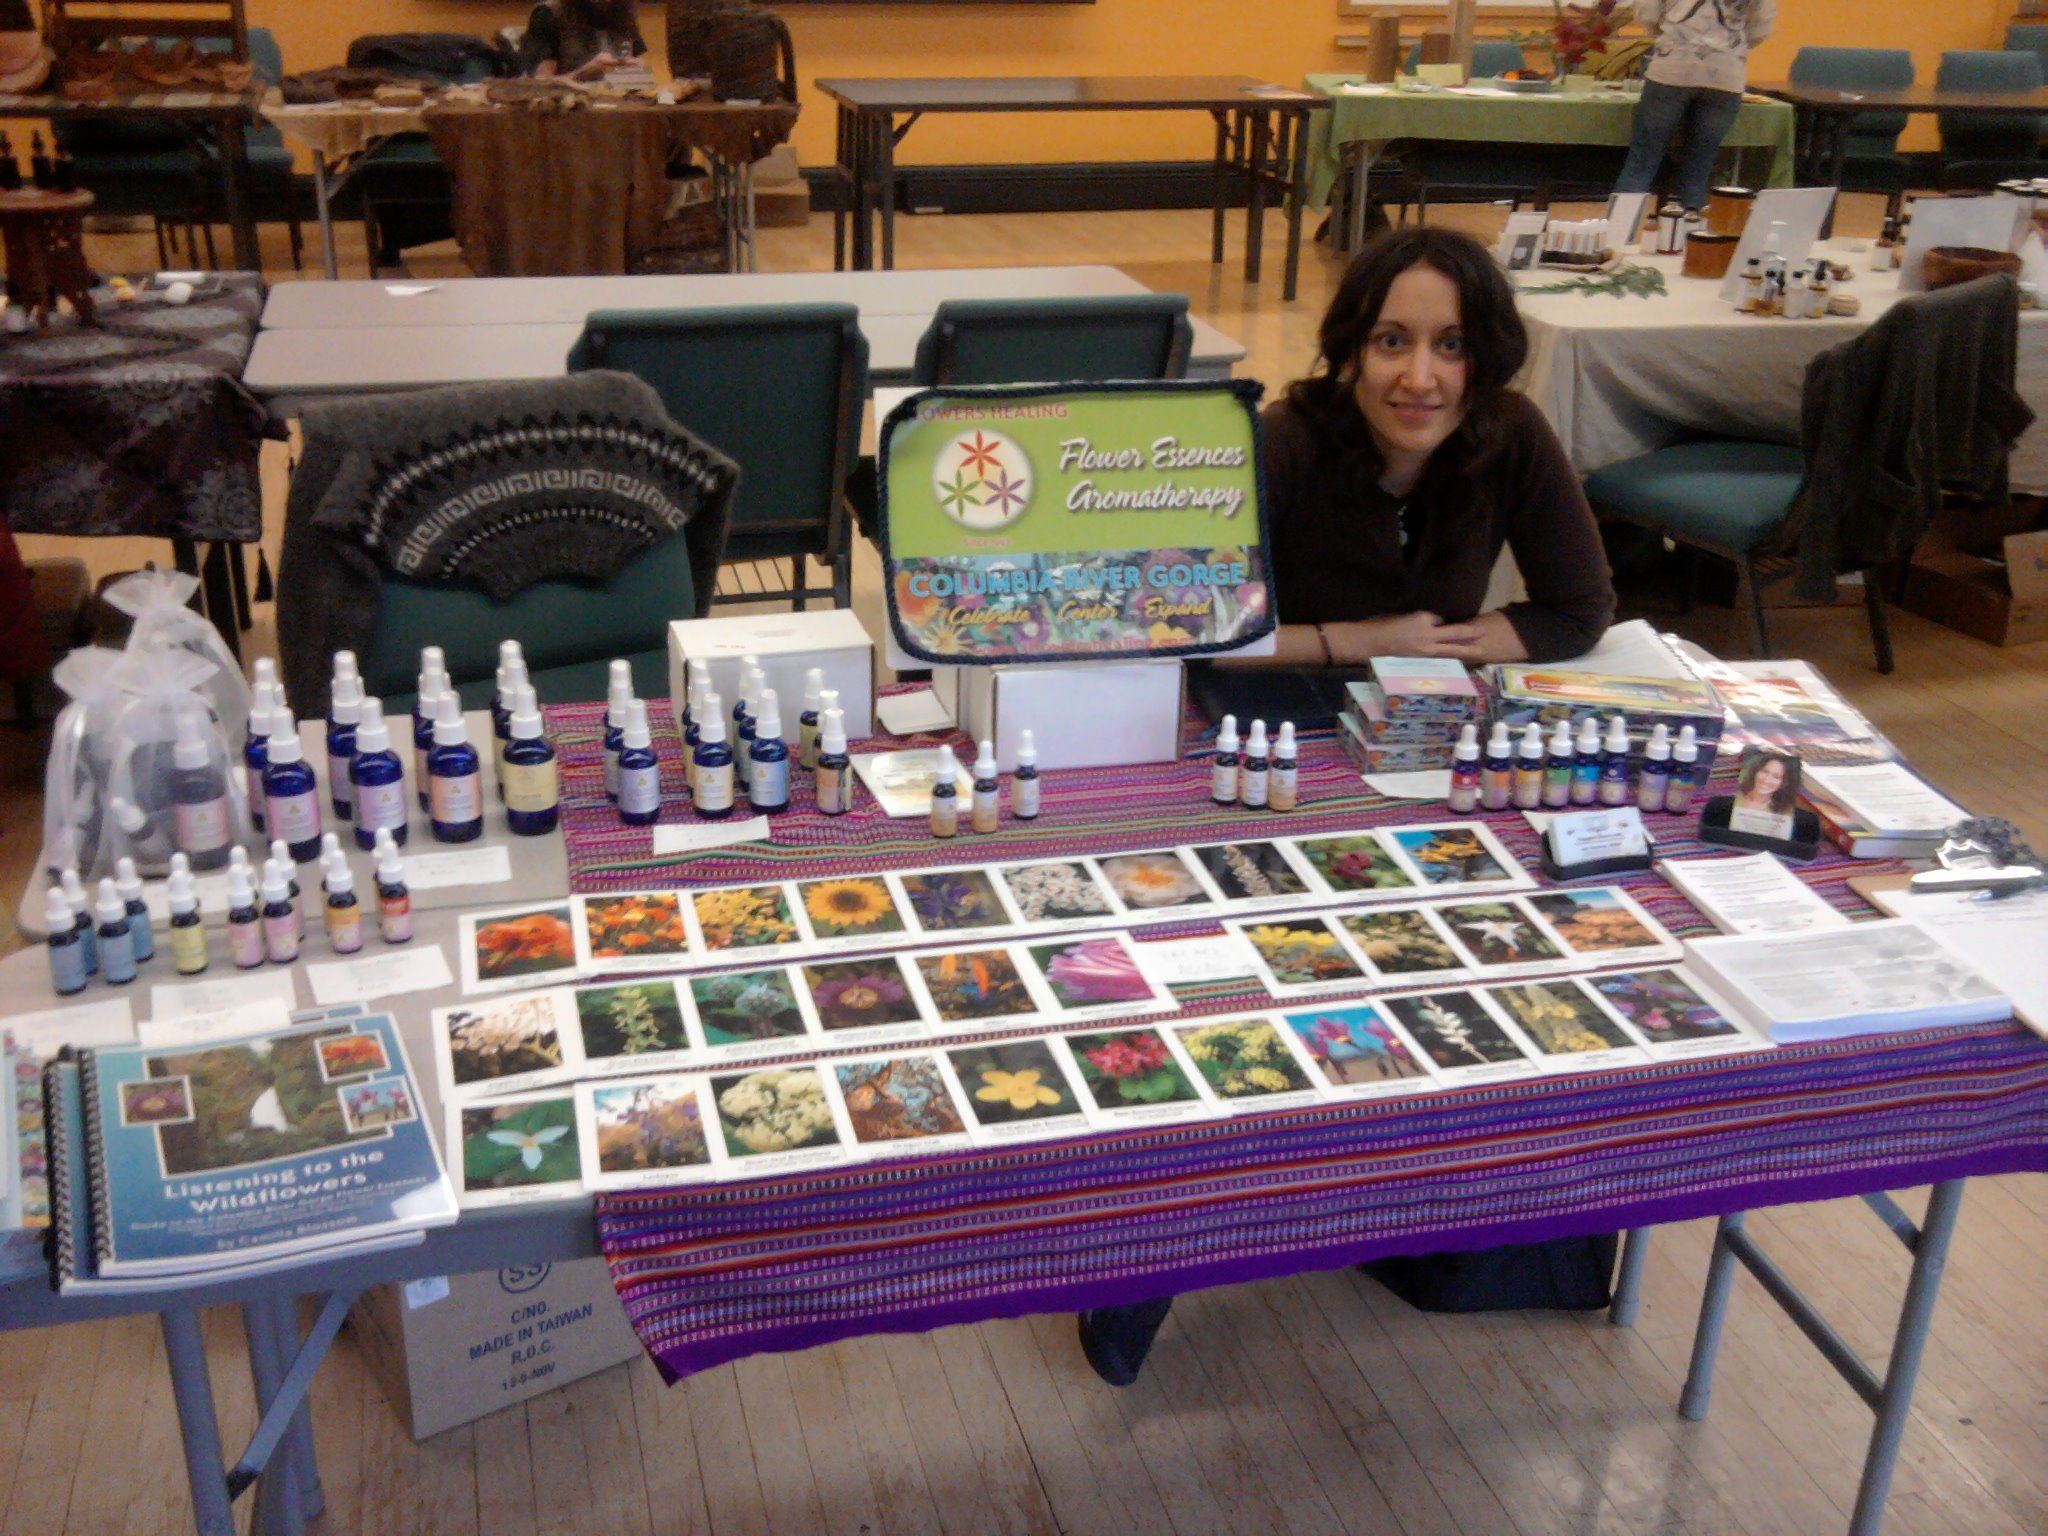 Jen at the Portland Plant Medicine Gathering conference. She had a mission to change the world and her weapons of choice were herbal medicine and astrology.